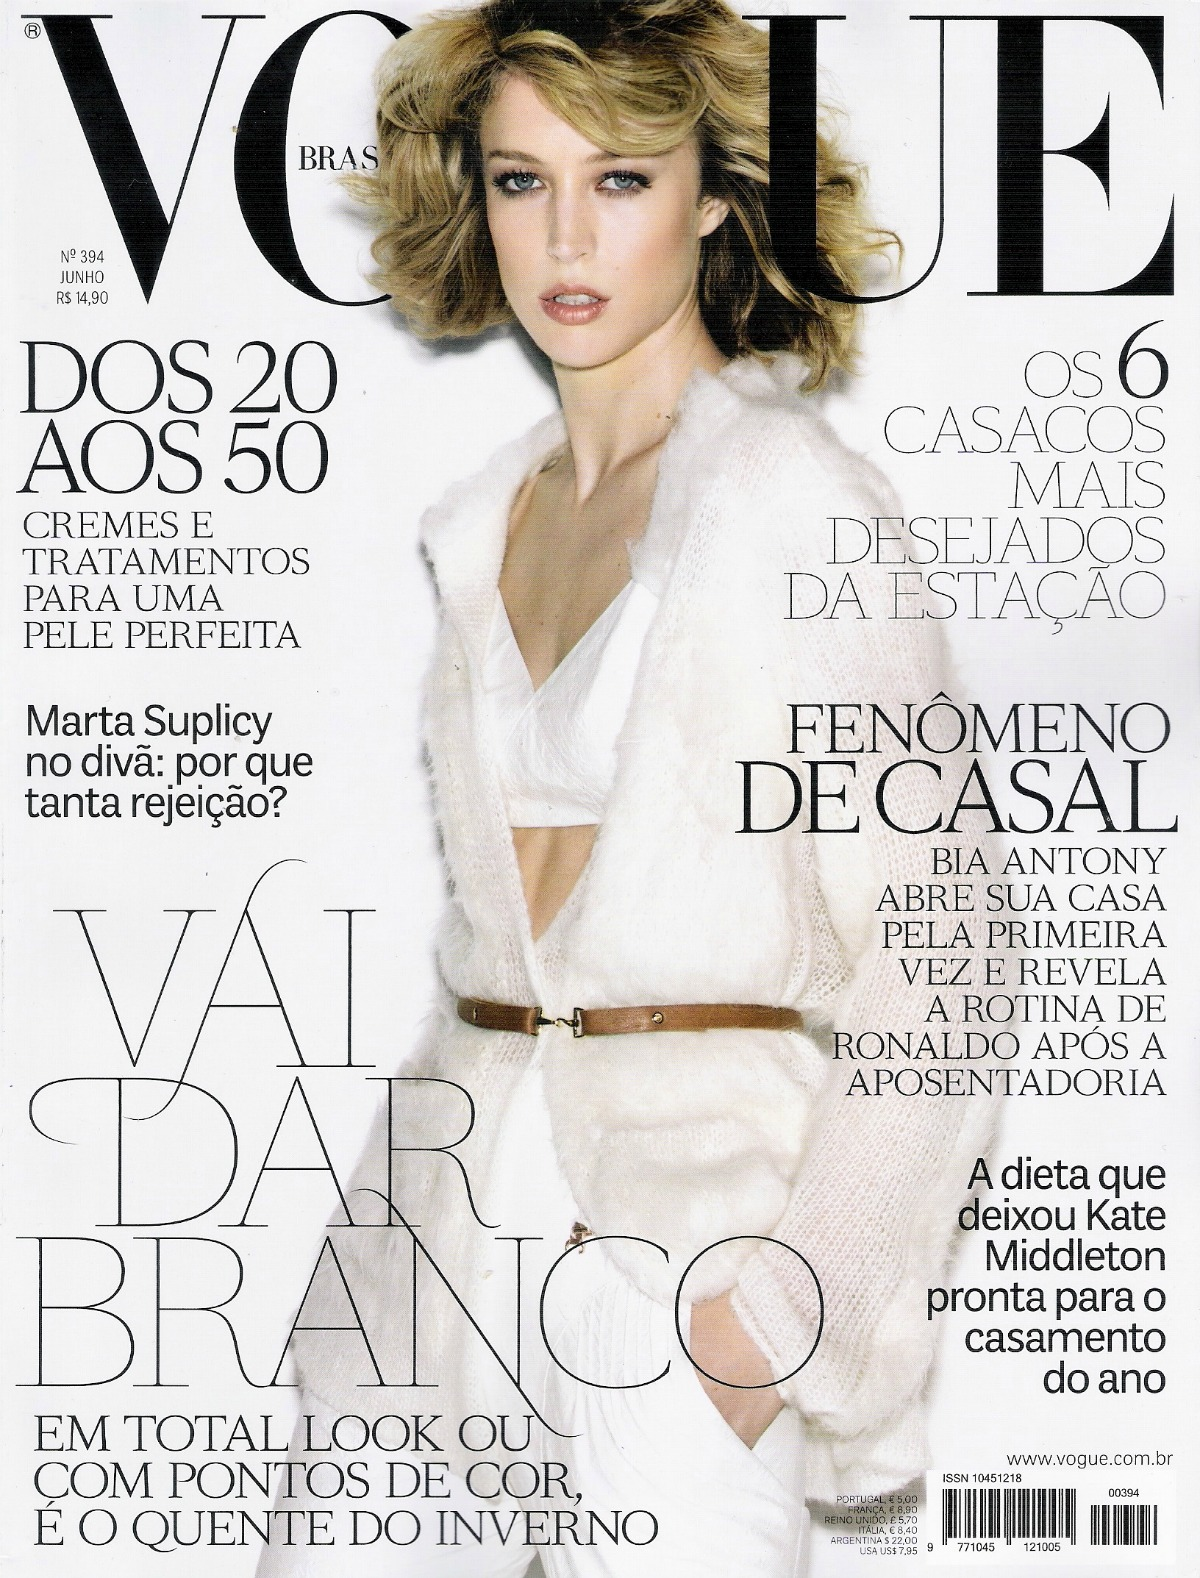 Hottest Magazine Covers: Nude(nu) Raquel Zimmermann on